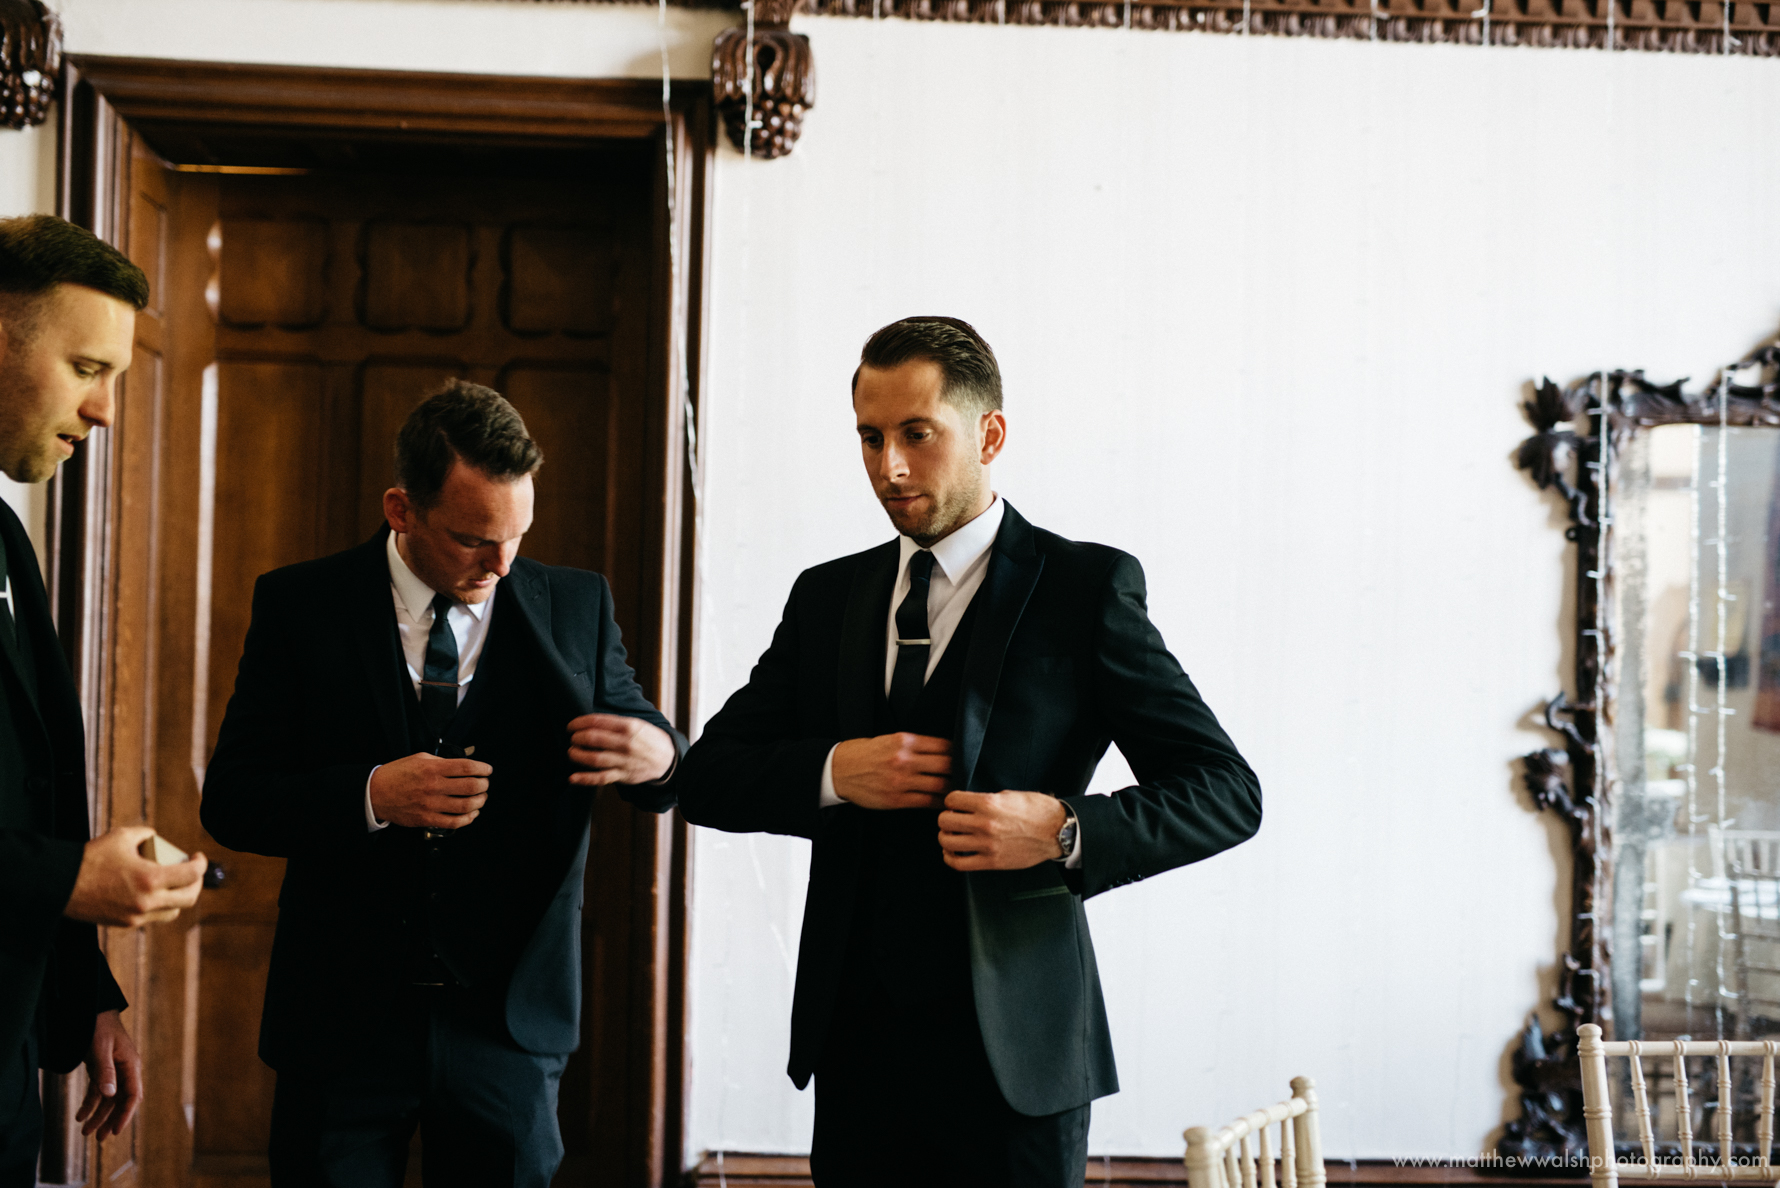 Pre ceremony nerves, the groom and his best men nervously check their pockets